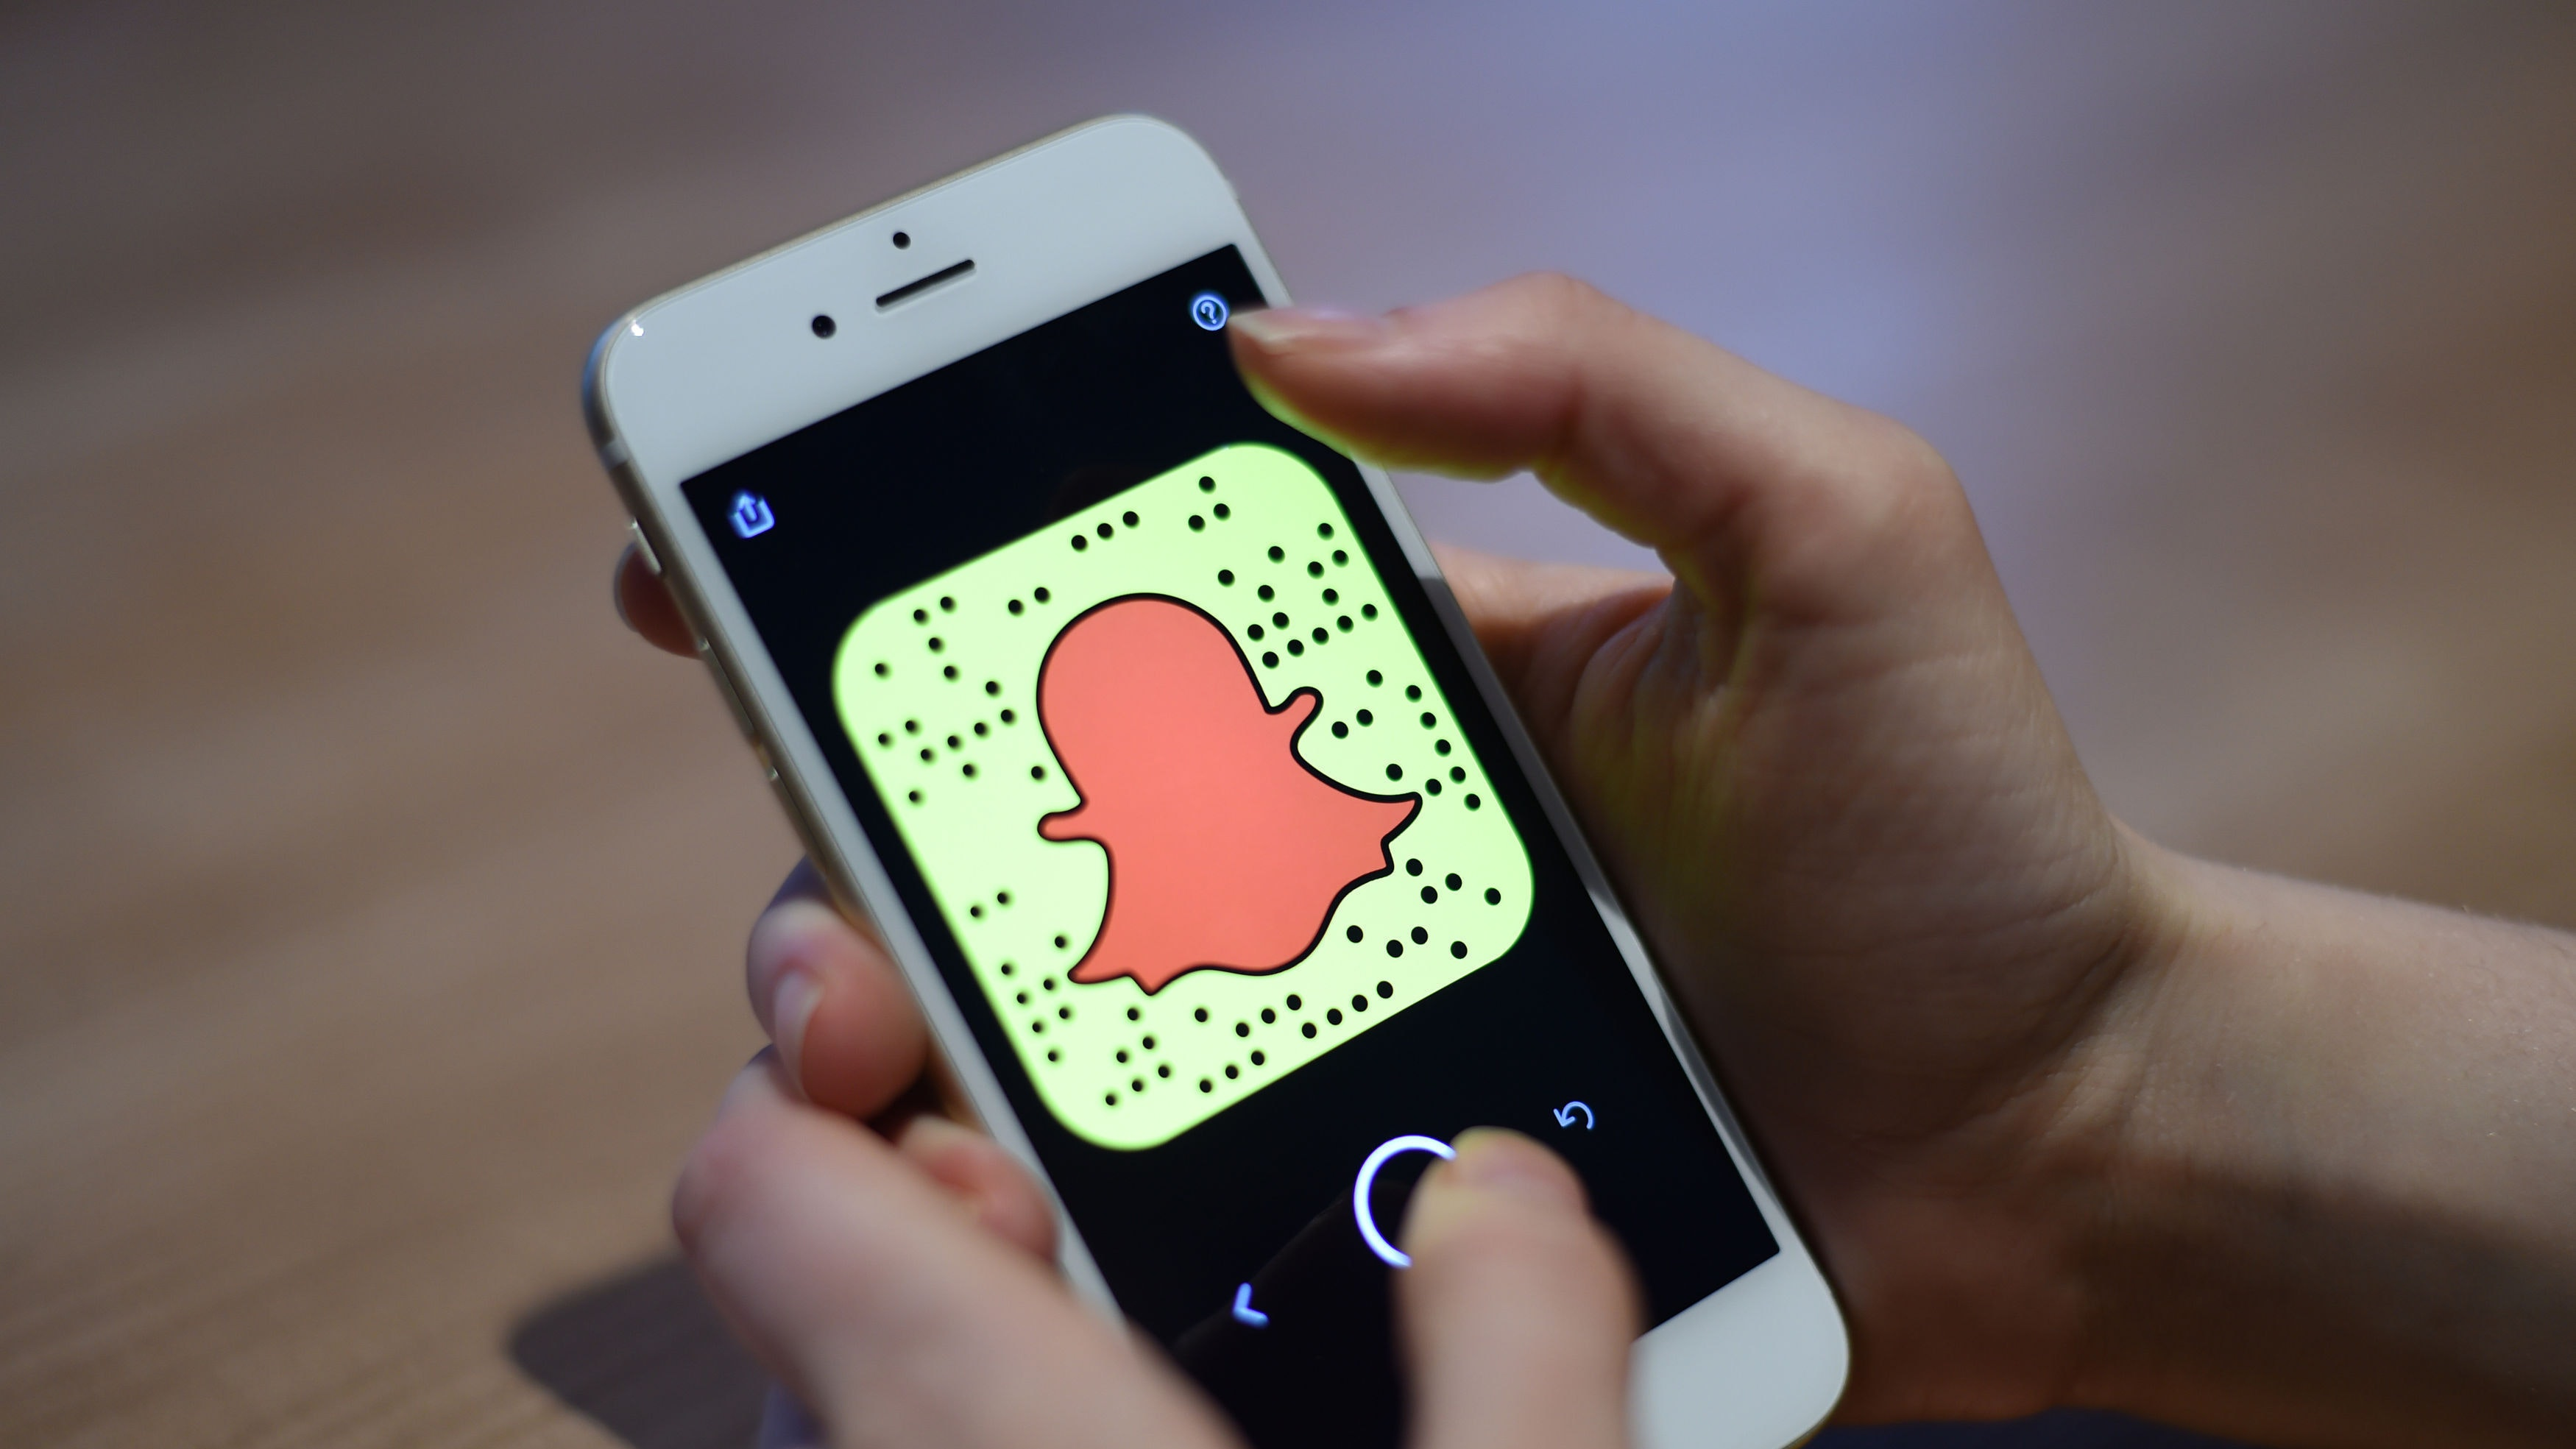 Snapchat admits its age verification tools do not work